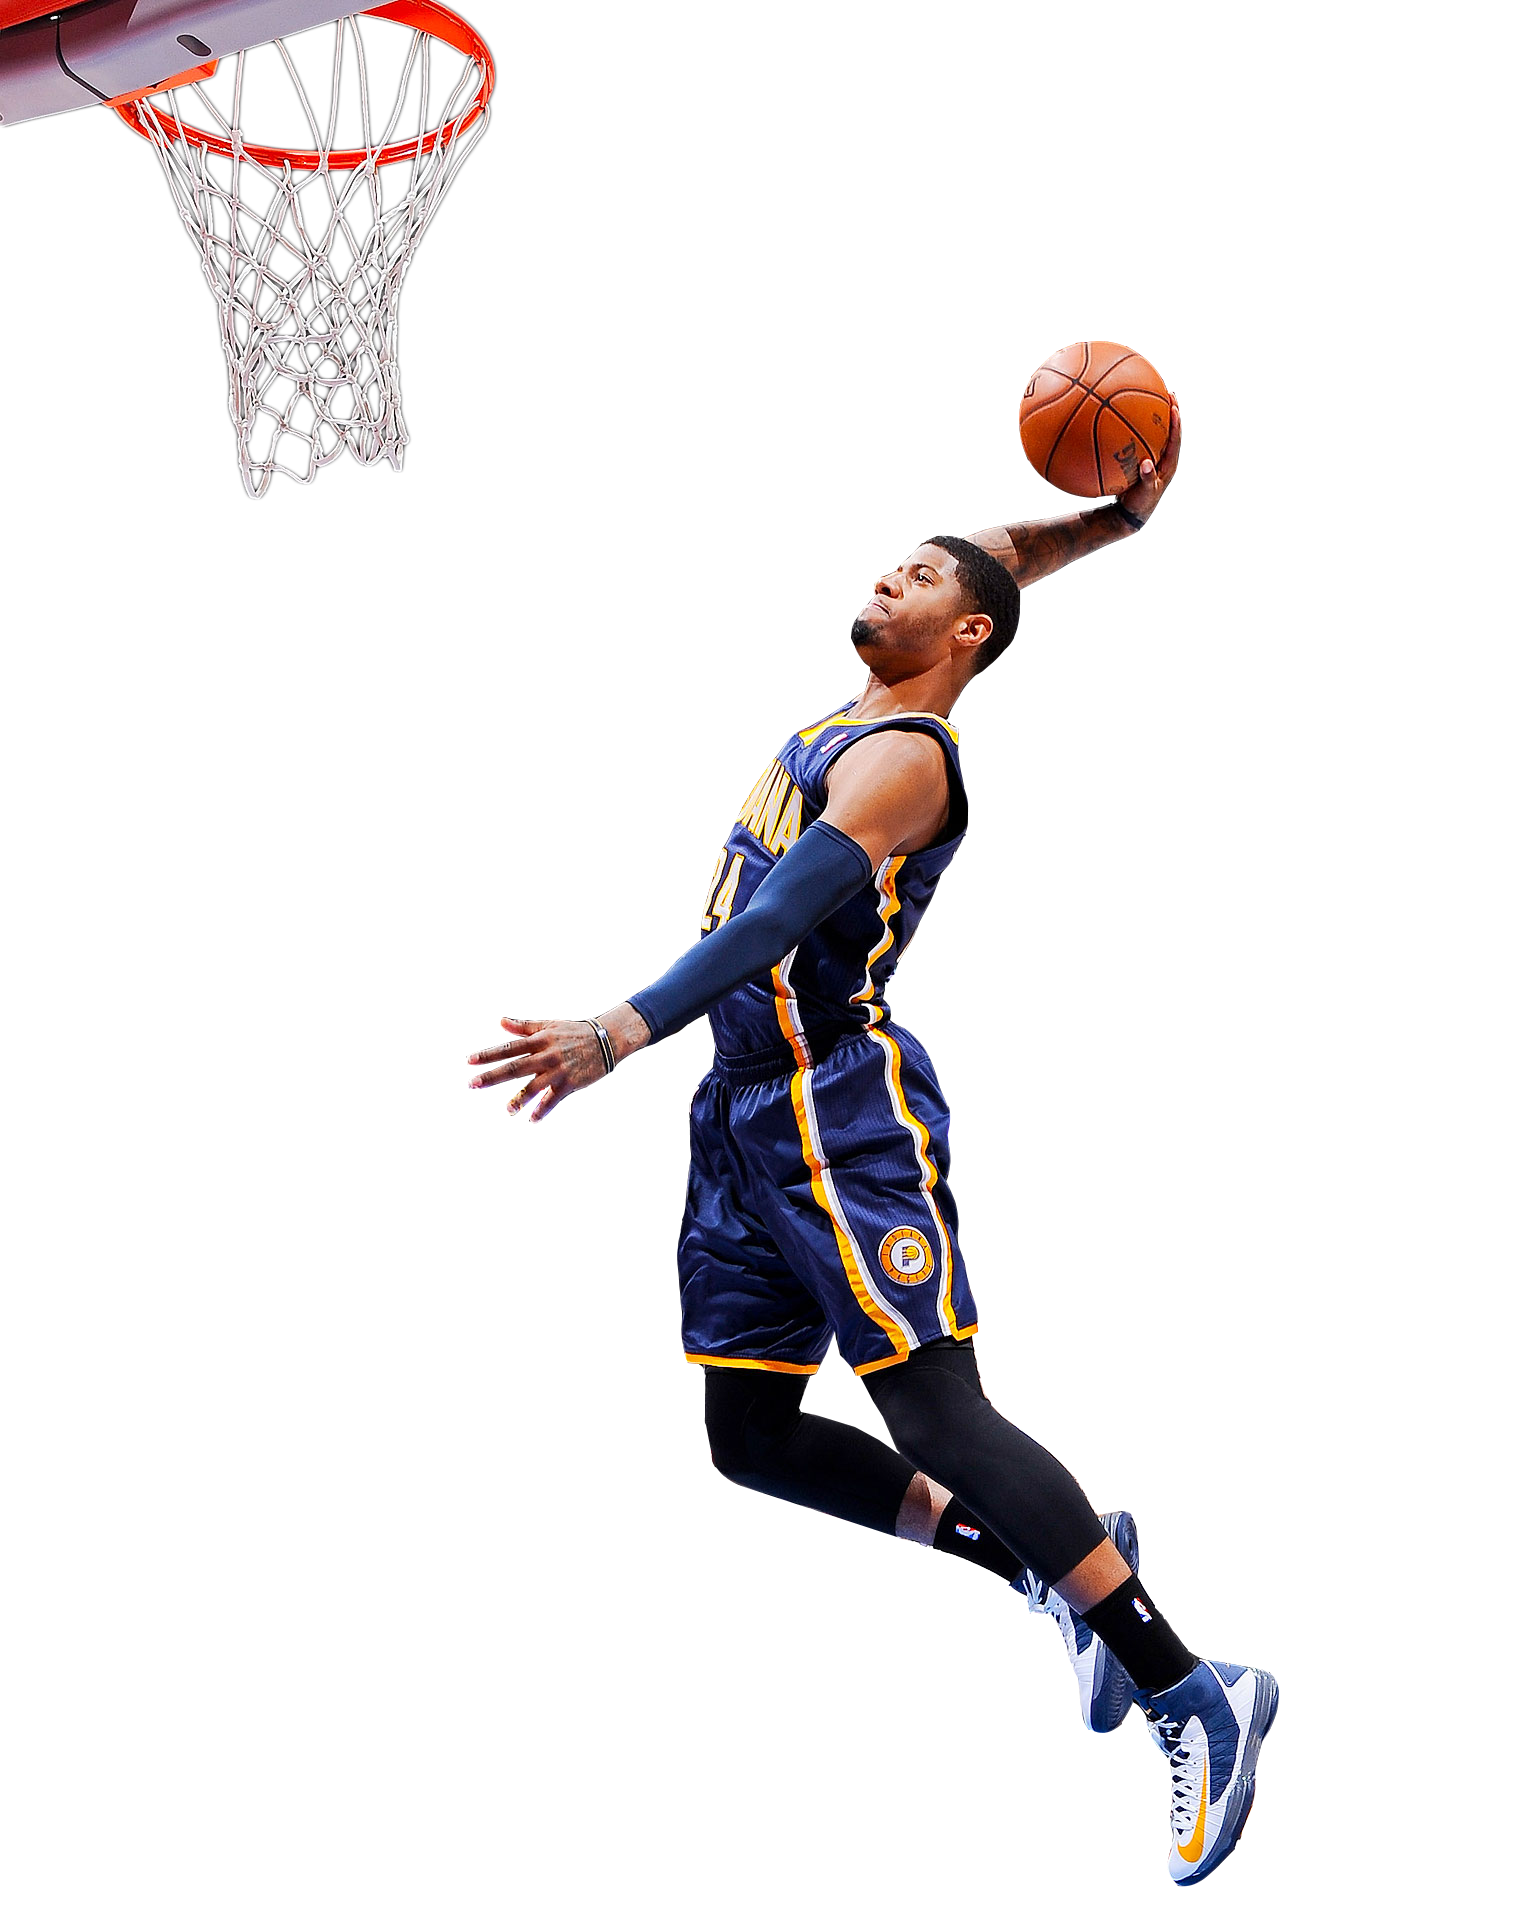 14275163811_e2e33d5ae7_o.png - Basketball Dunk PNG